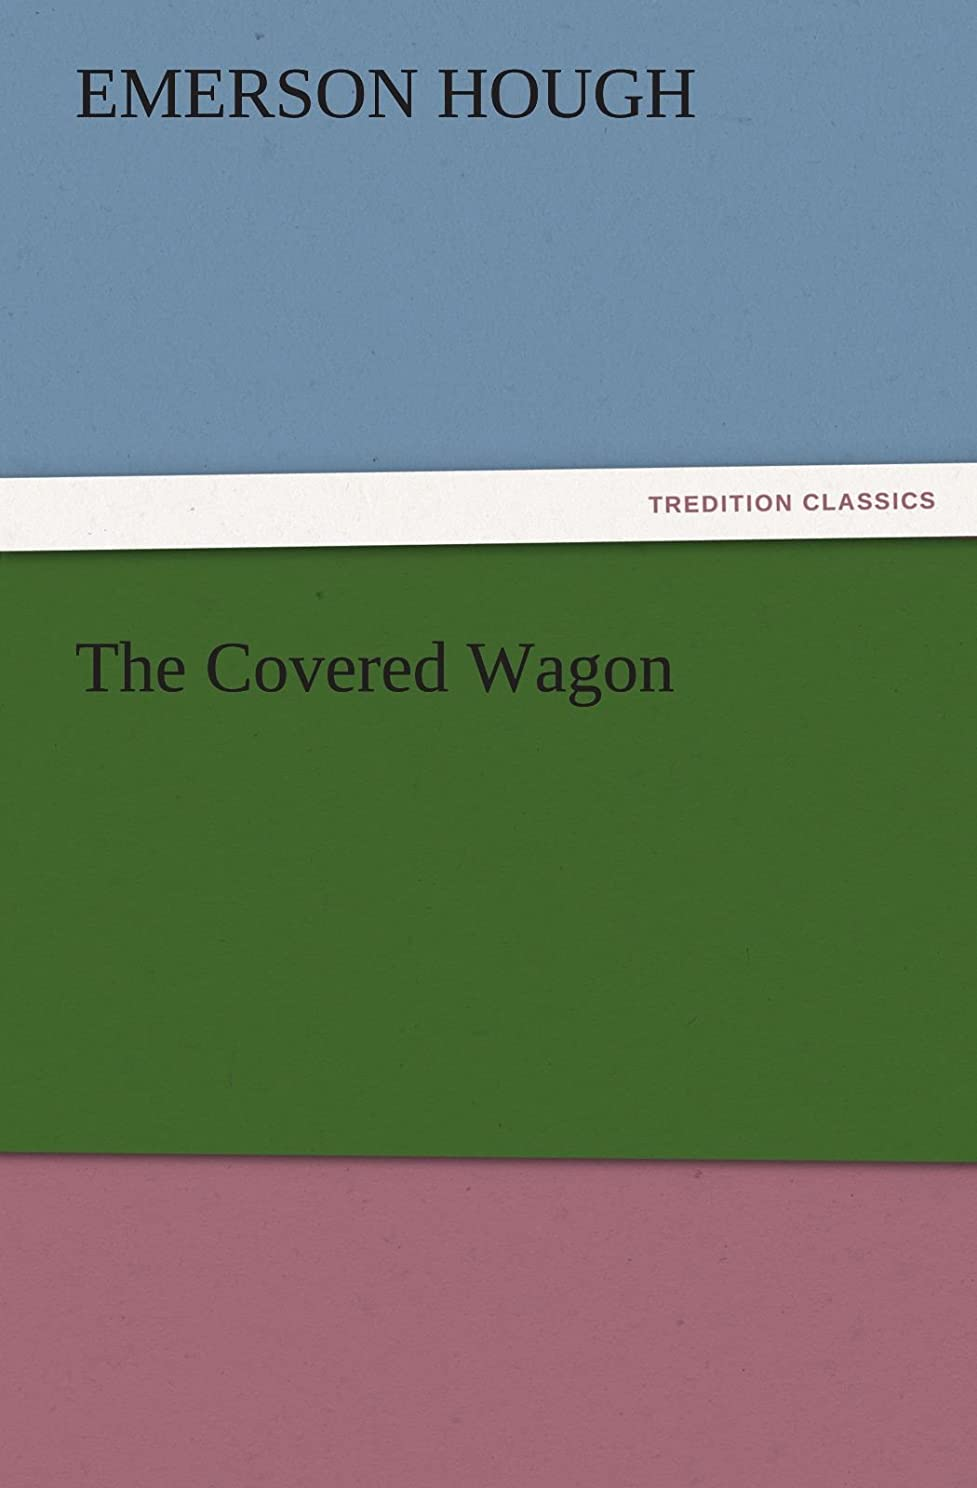 素晴らしいです長老遅いThe Covered Wagon (TREDITION CLASSICS)